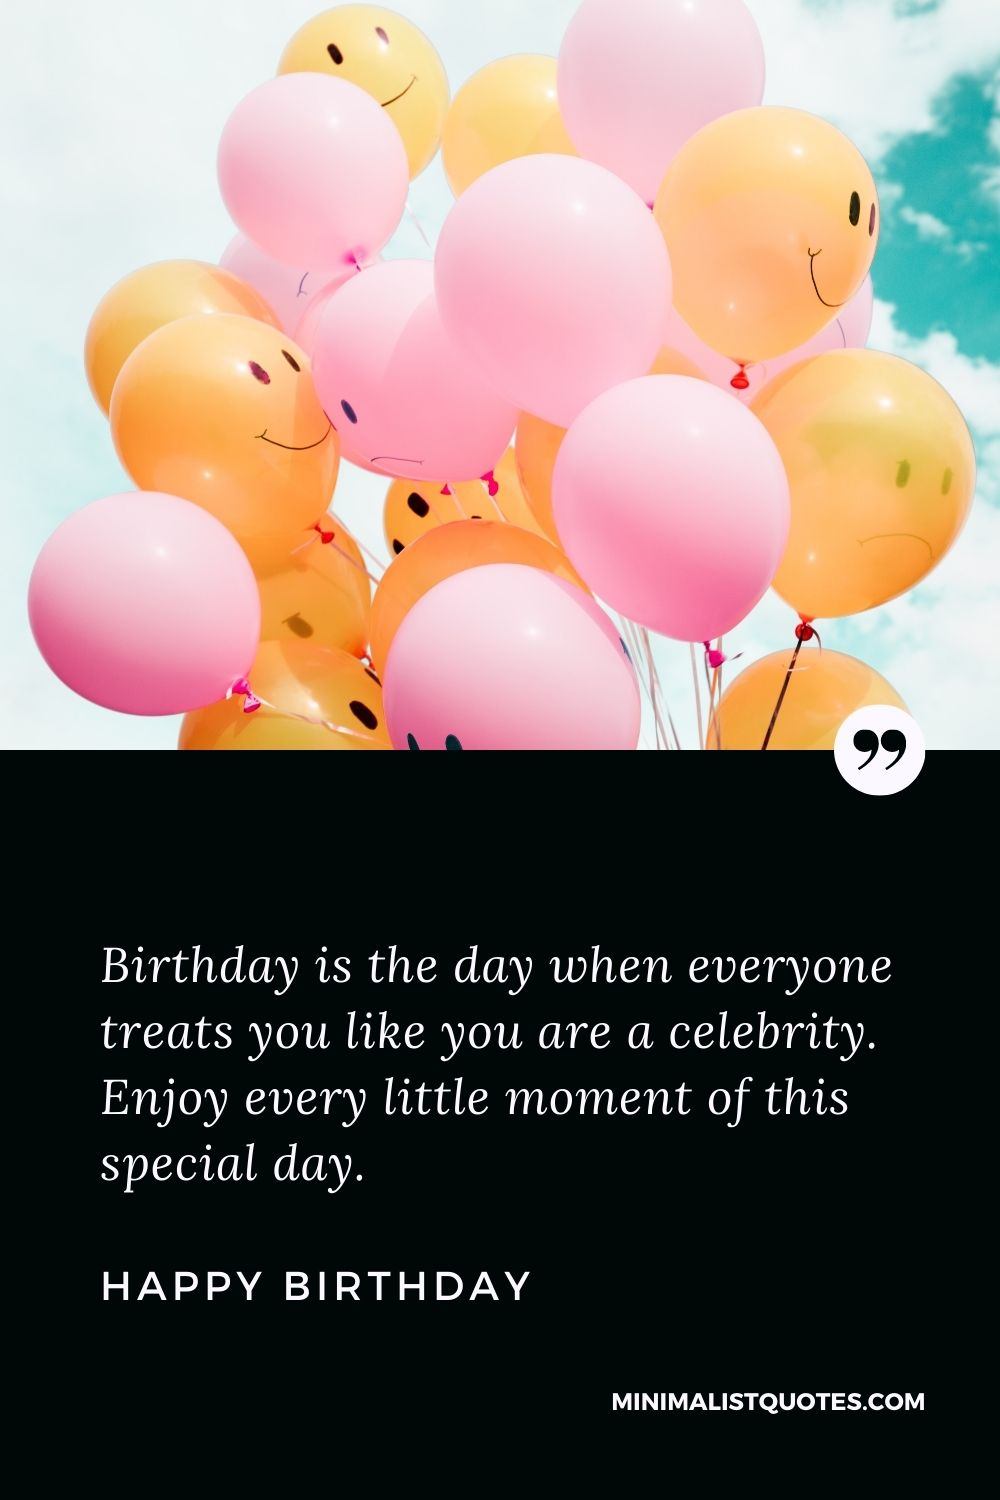 Happy Birthday Wishes - Birthday is the day when everyone treats you like you are a celebrity. Enjoy every little moment of this special day.